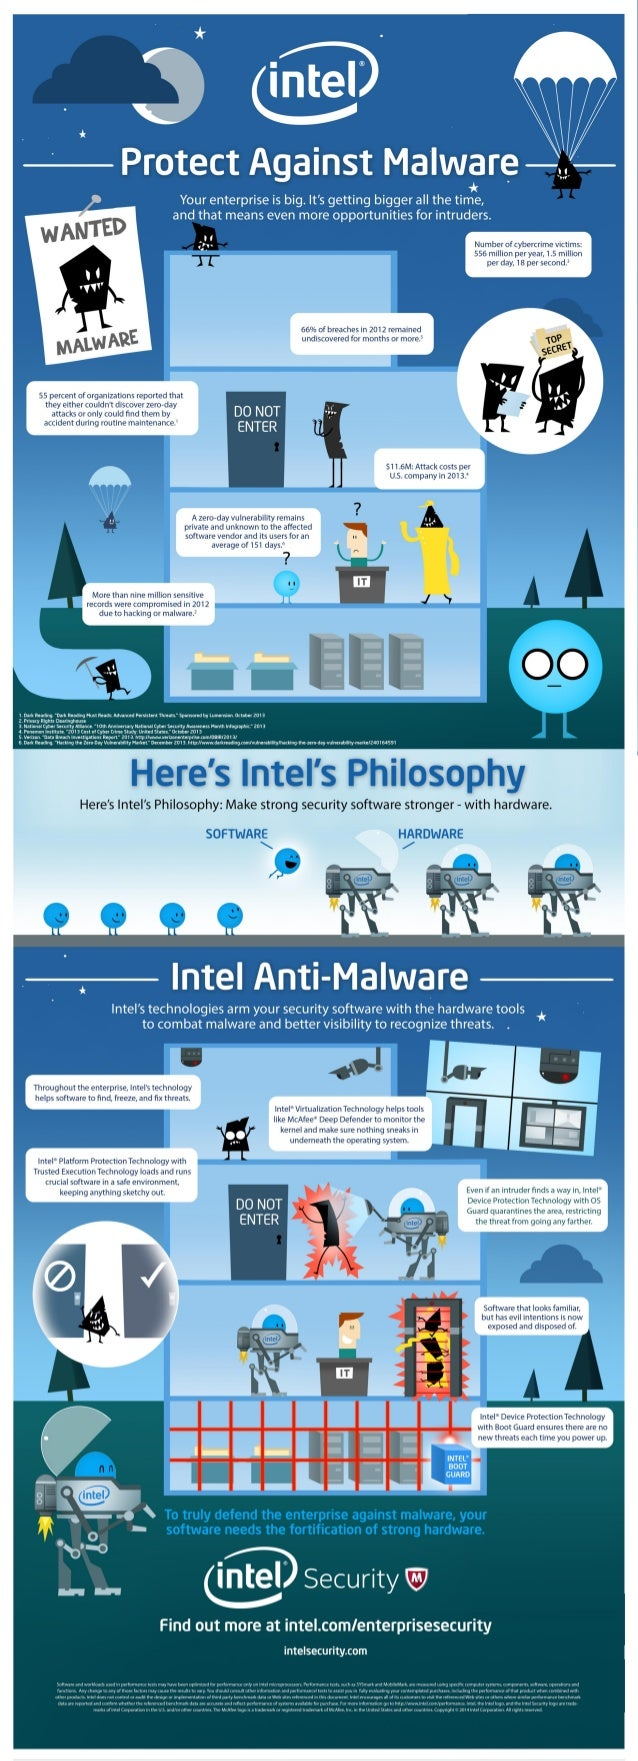 How Intel Security Defends Against Malware - Infographic